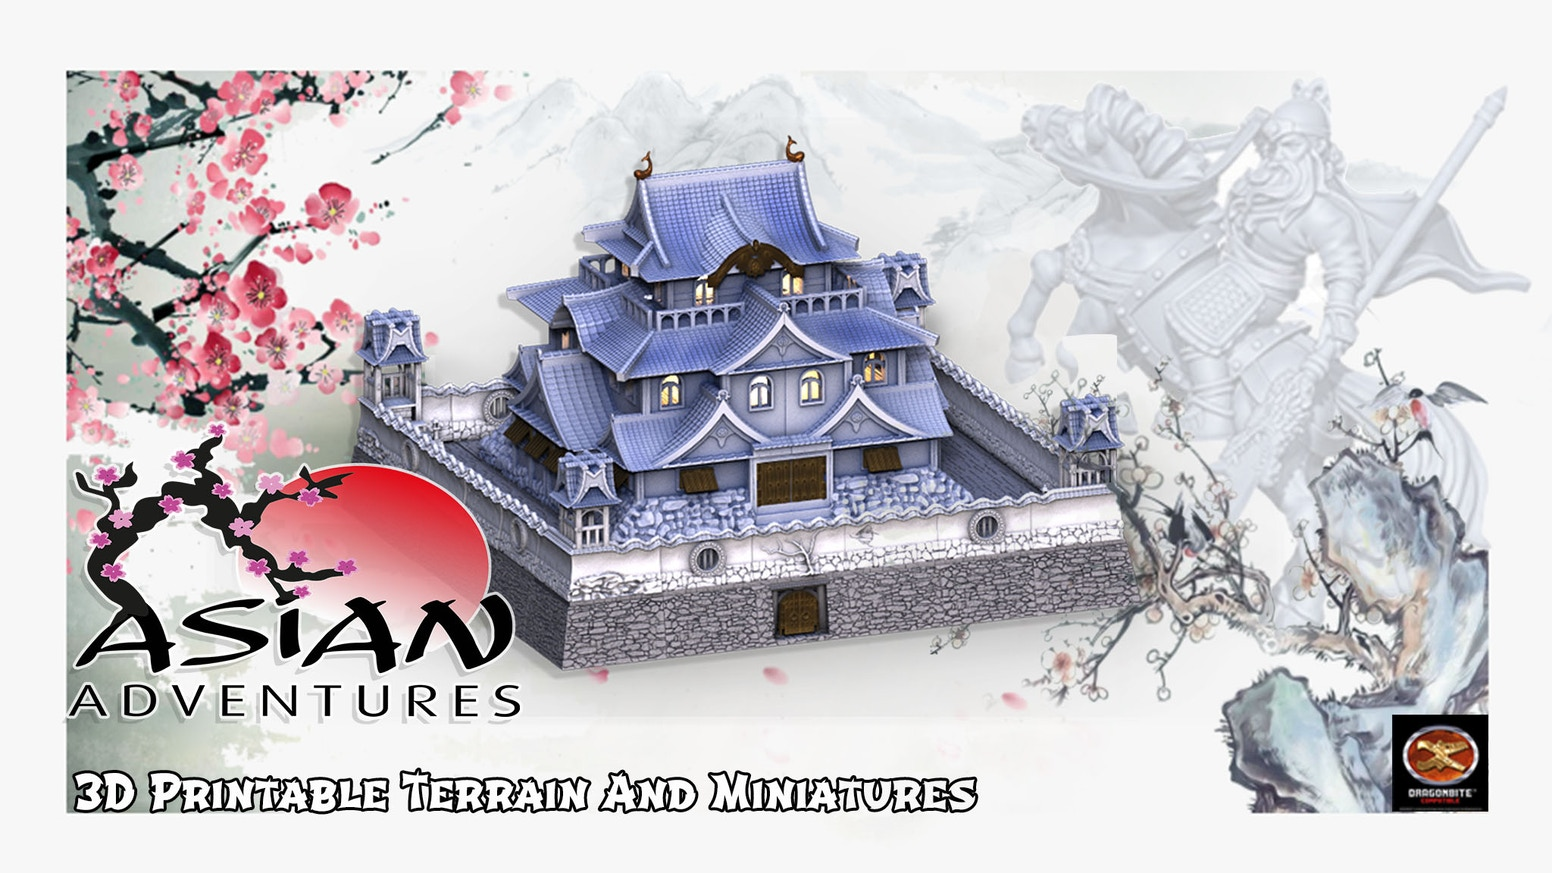 3D Printable STL Miniatures and terrain for Role Playing Games, Tabletop, Wargames, or other RPG